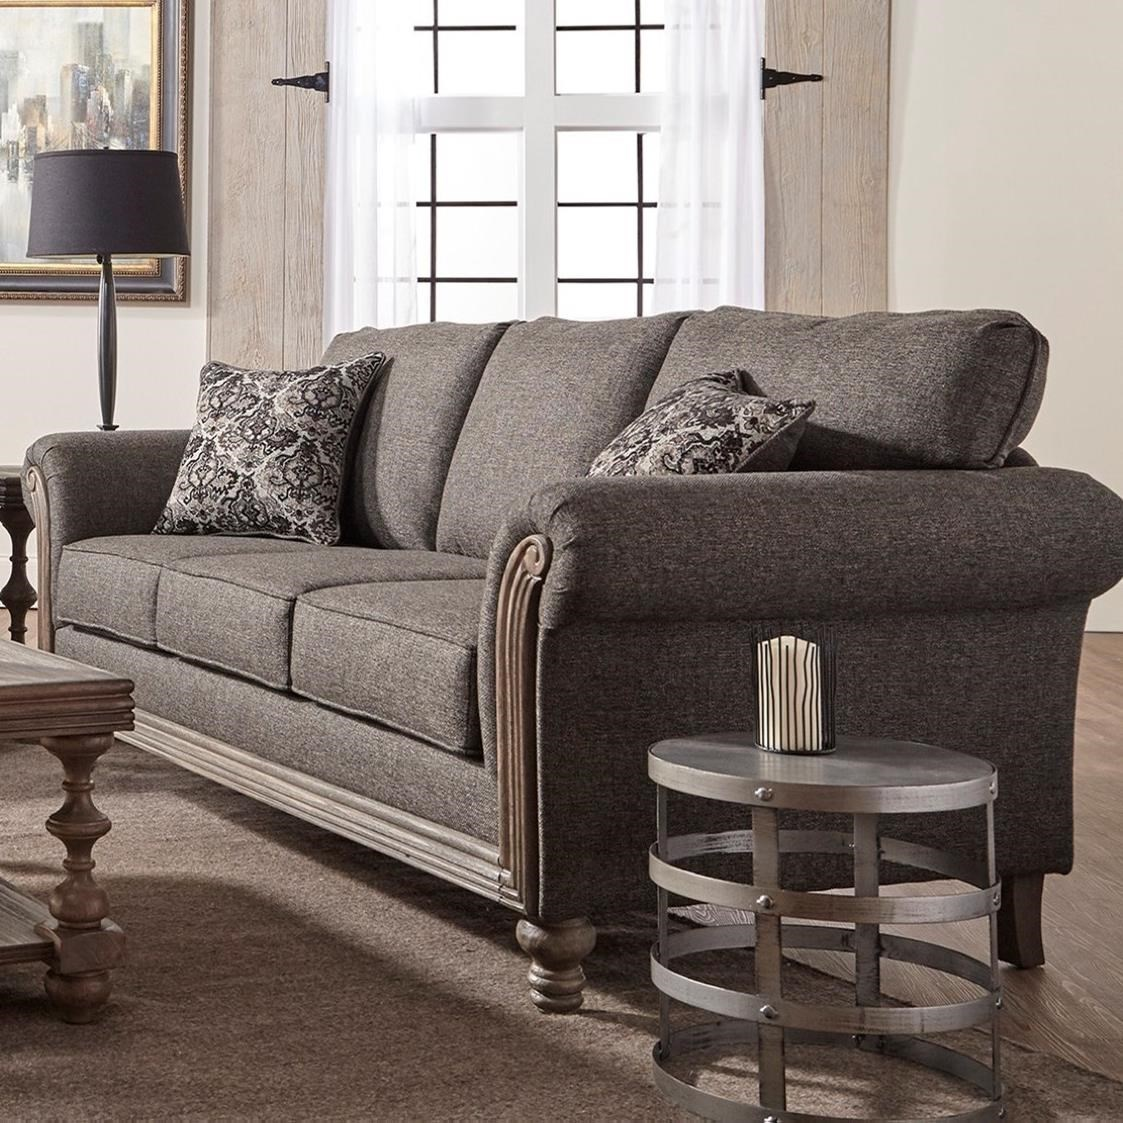 Superb Serta Upholstery By Hughes Furniture 3400 Traditional Stationary Sofa With  Rolled Arms